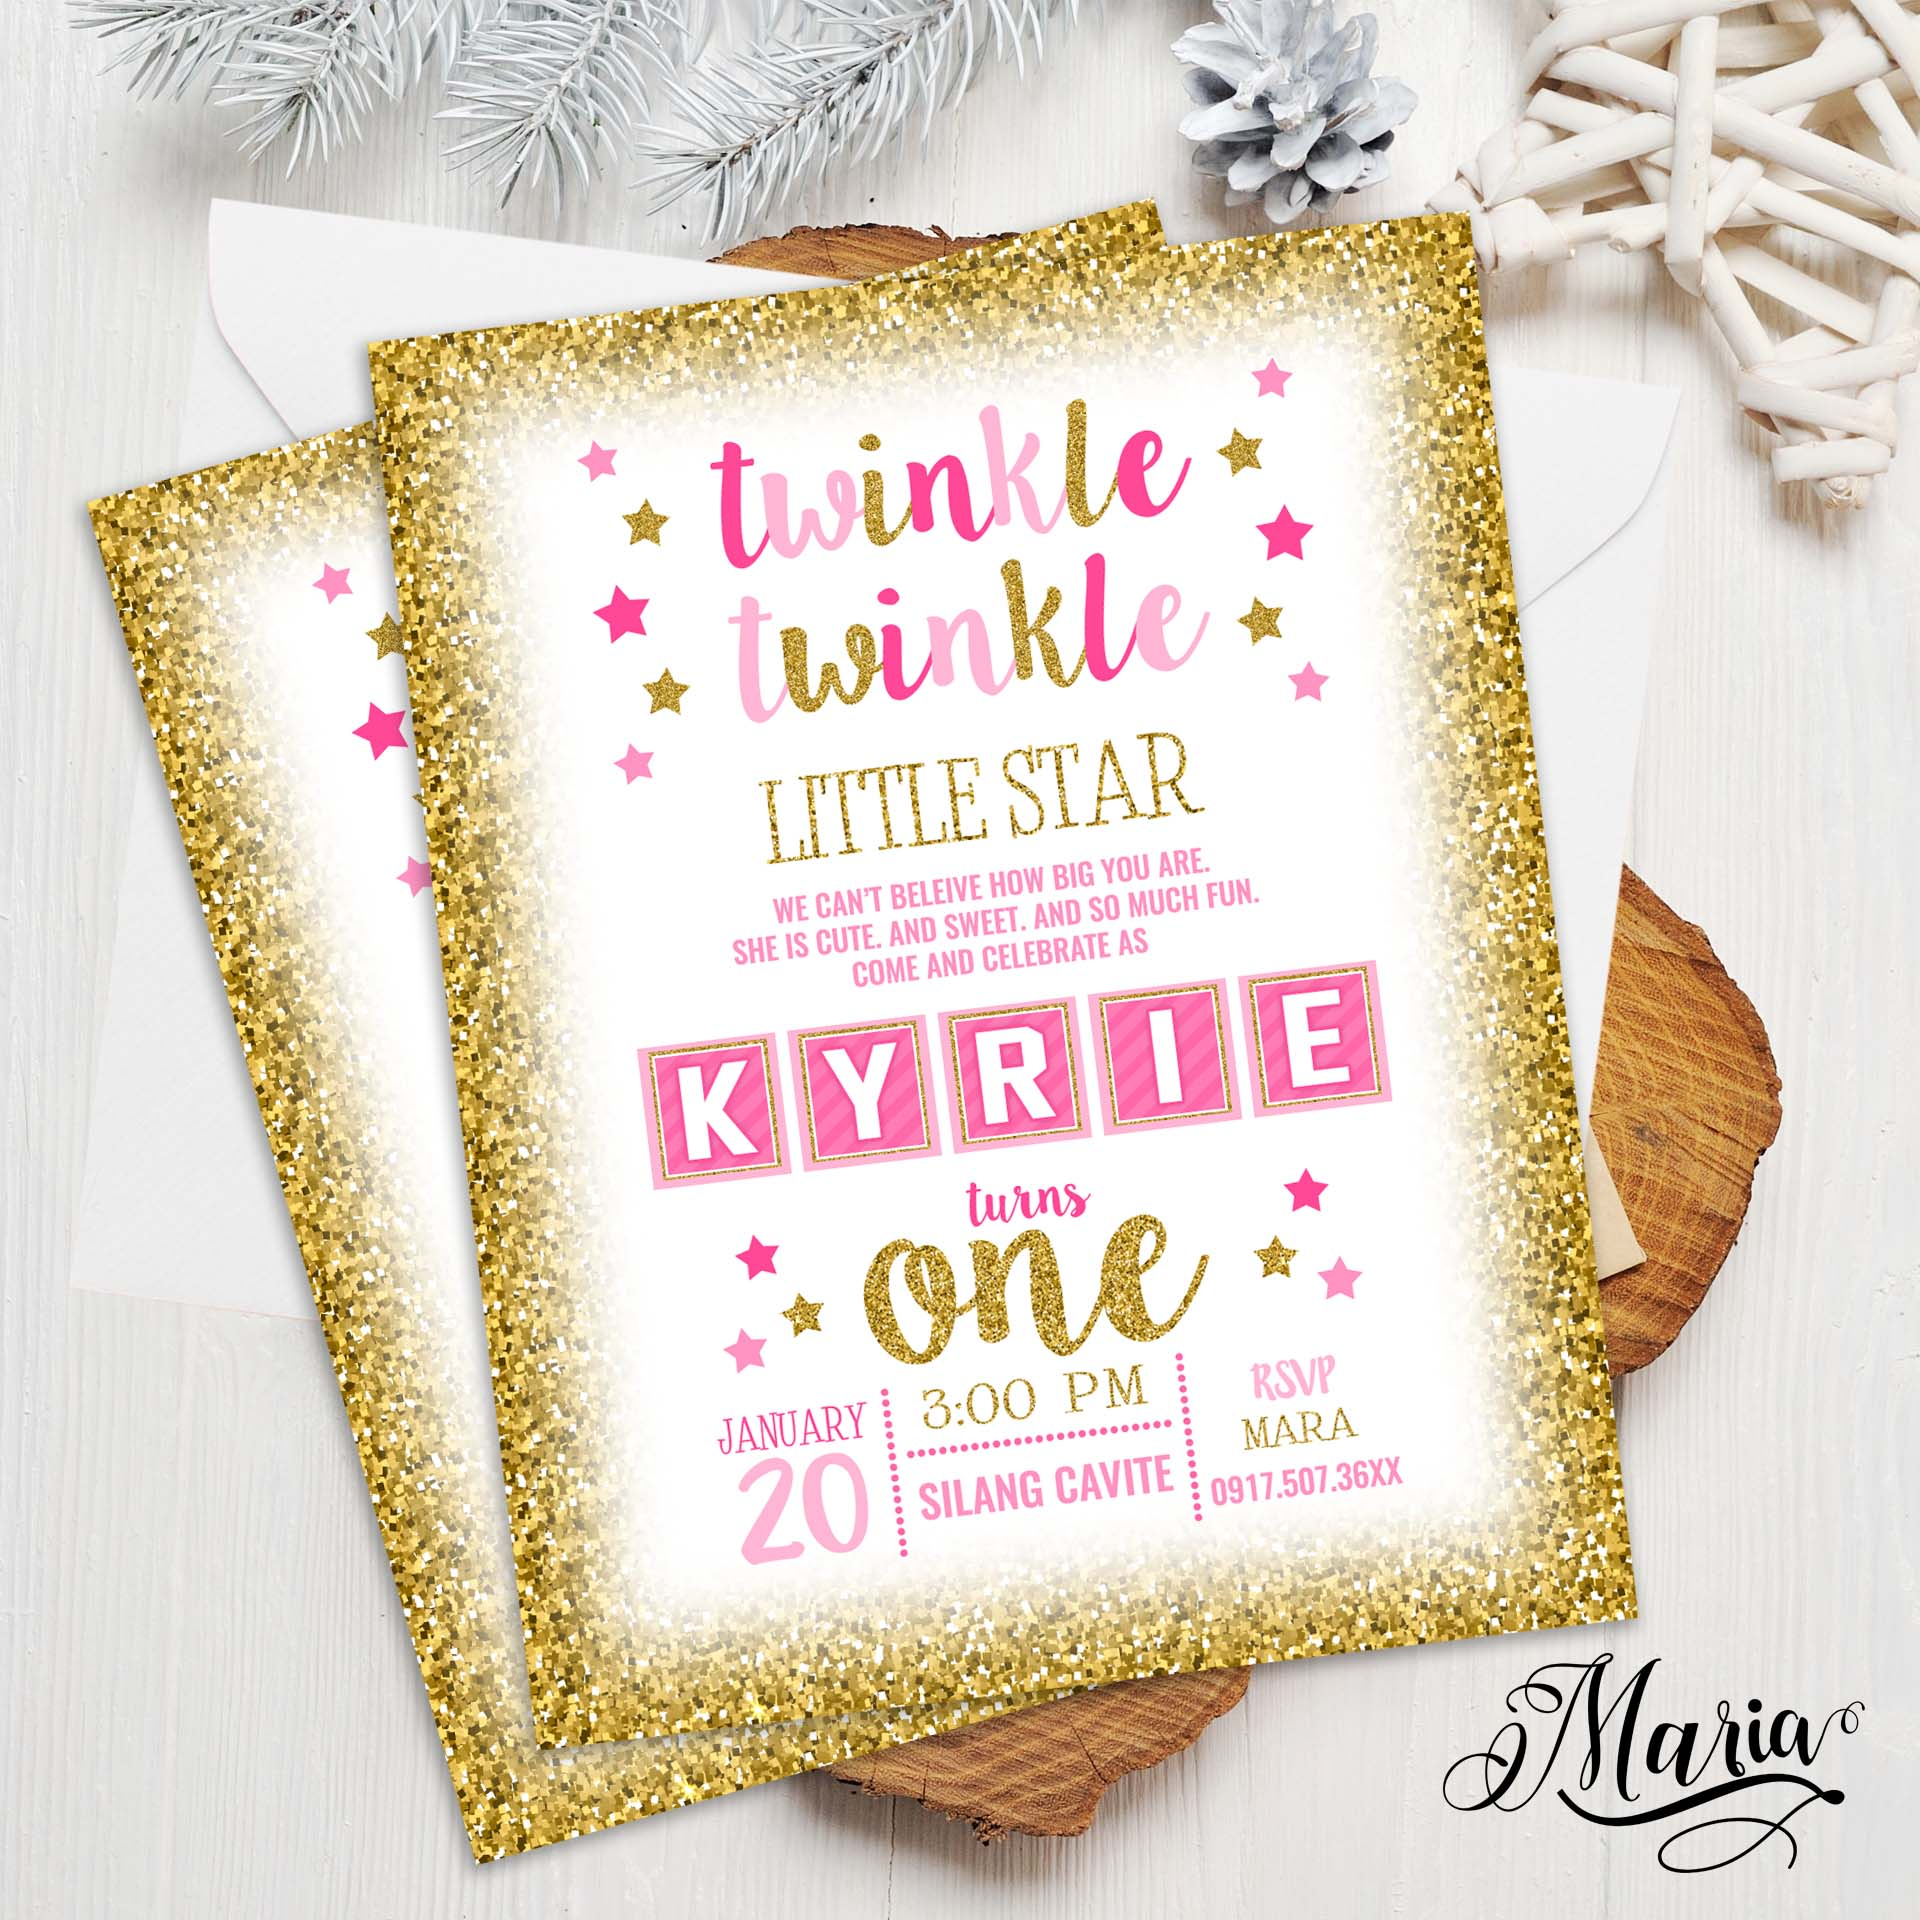 twinkle christening invitation card set of 14 personalized baptismal invitation for birthday christening baptismal